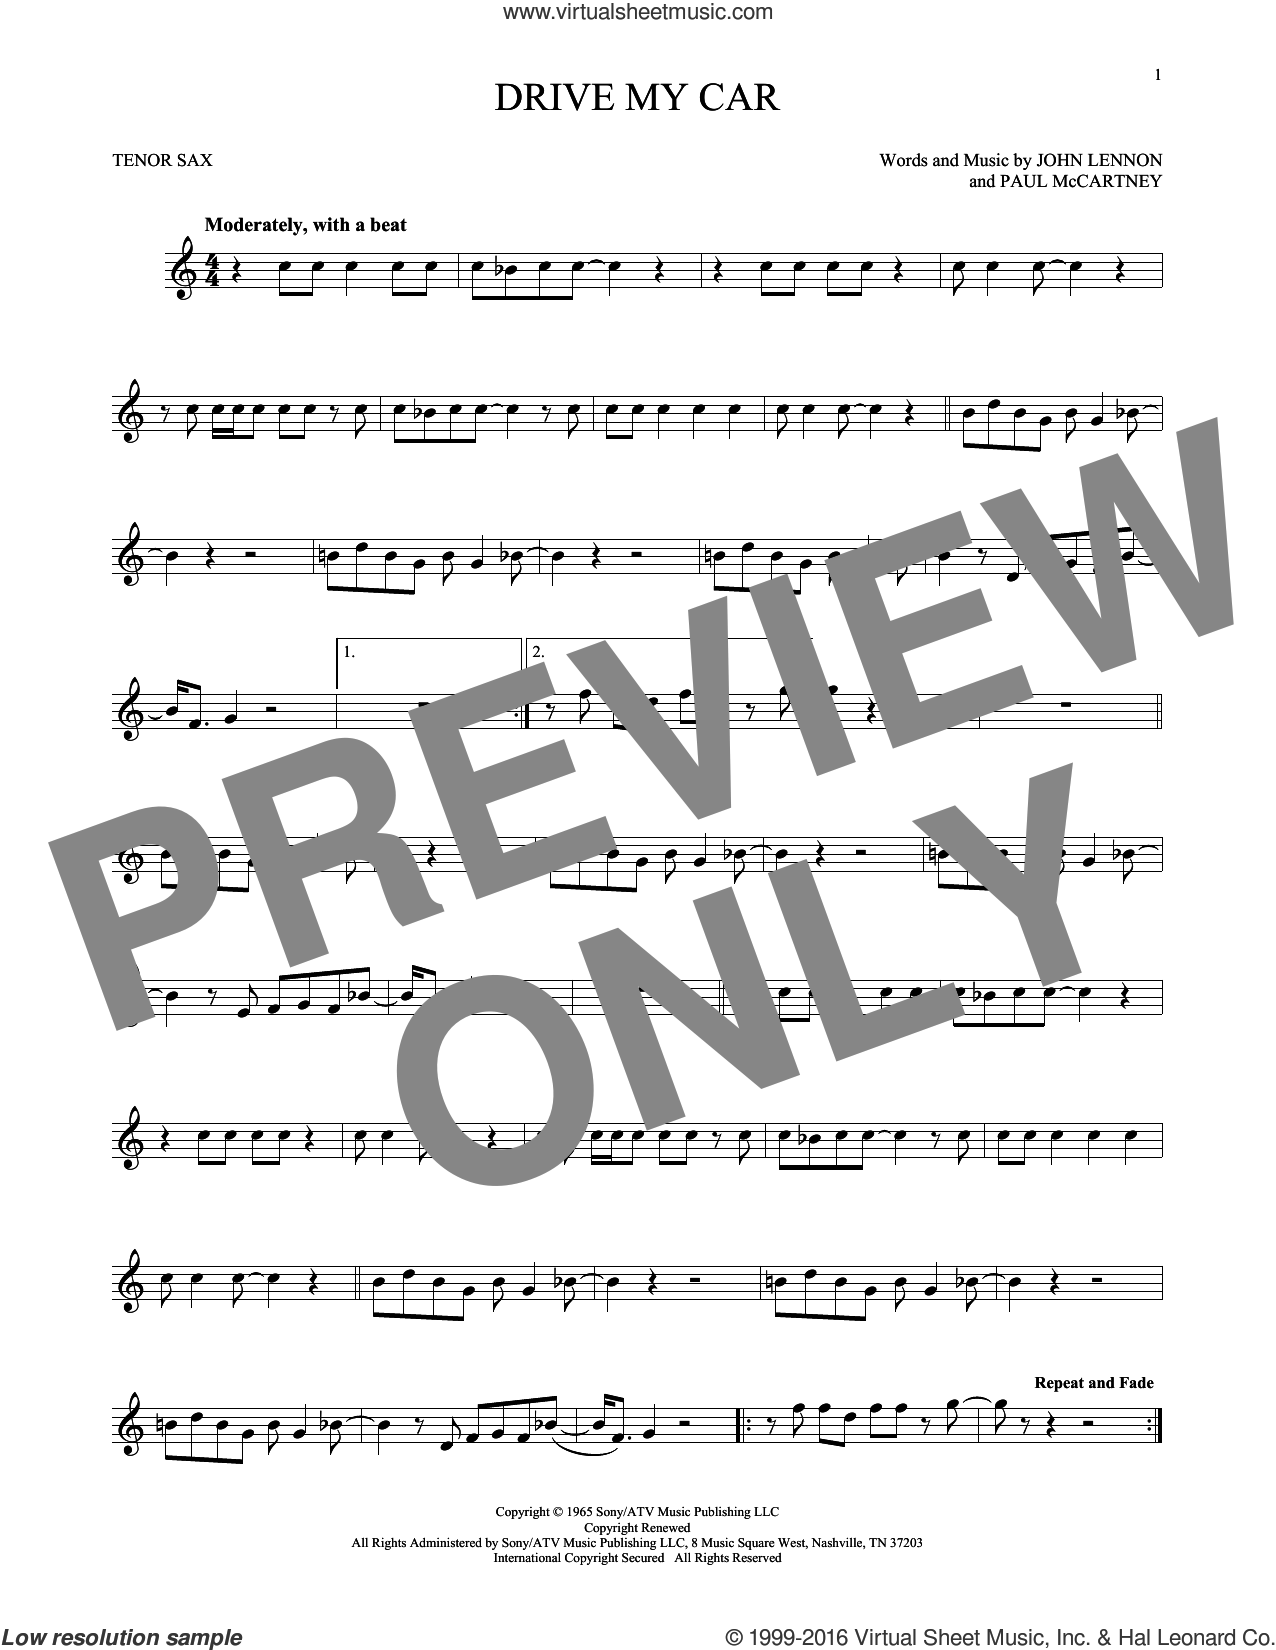 Drive My Car sheet music for tenor saxophone solo by The Beatles, John Lennon and Paul McCartney, intermediate skill level